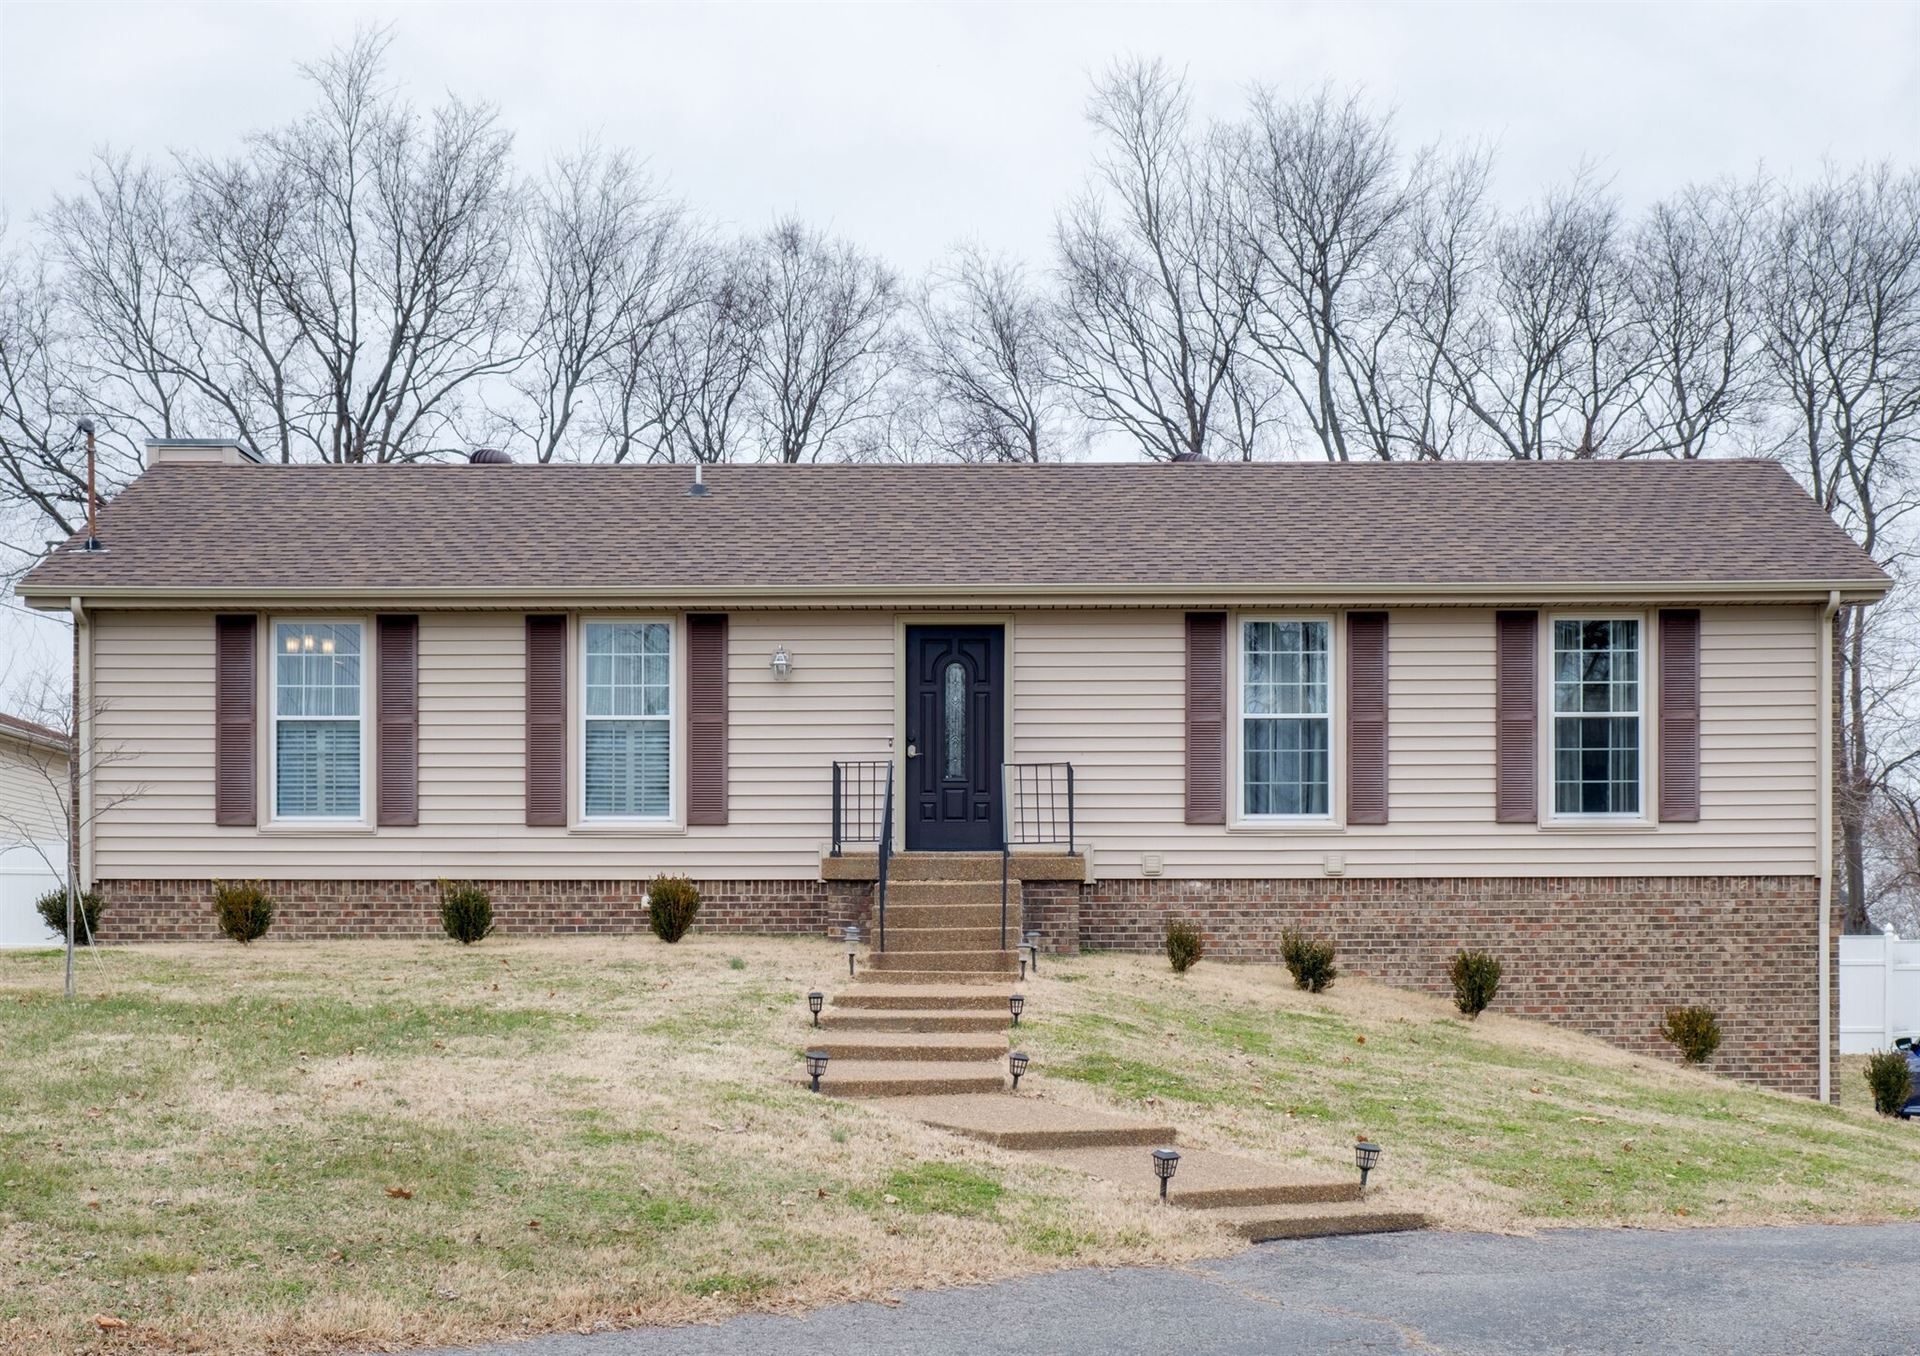 325 W Overhill Dr, Old Hickory, TN 37138 - MLS#: 2218856